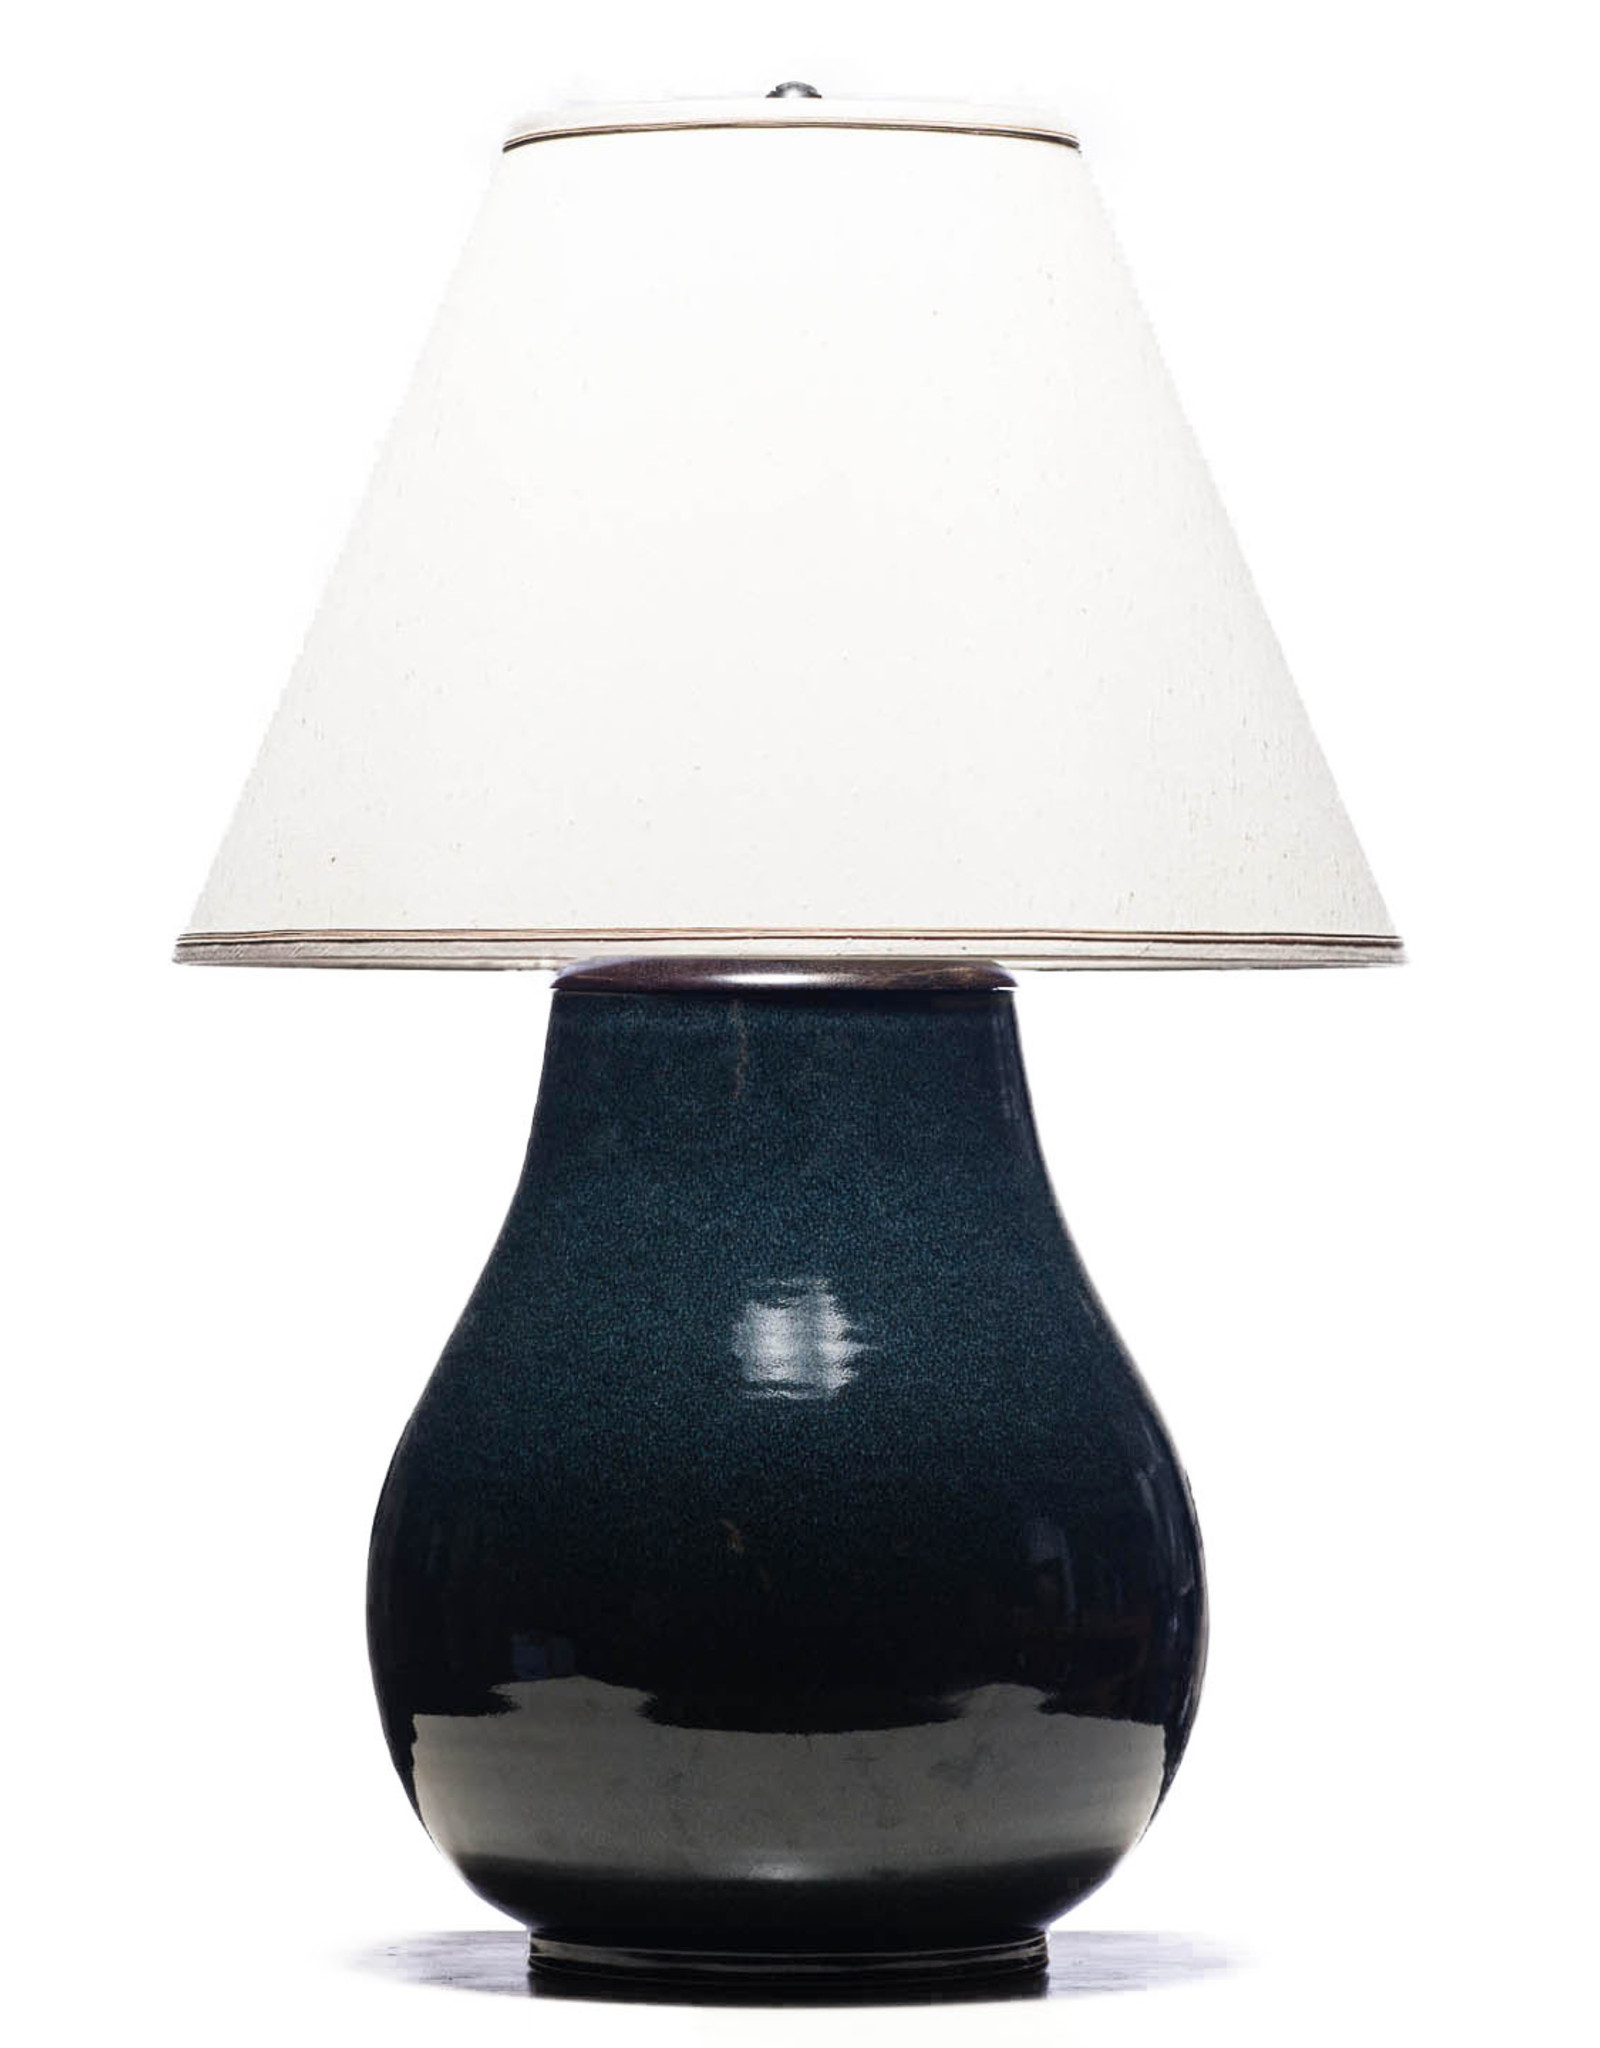 Lawrence & Scott Legacy Lillian Table Lamp in Ocean Blue Textured Glaze with Rosewood Cap